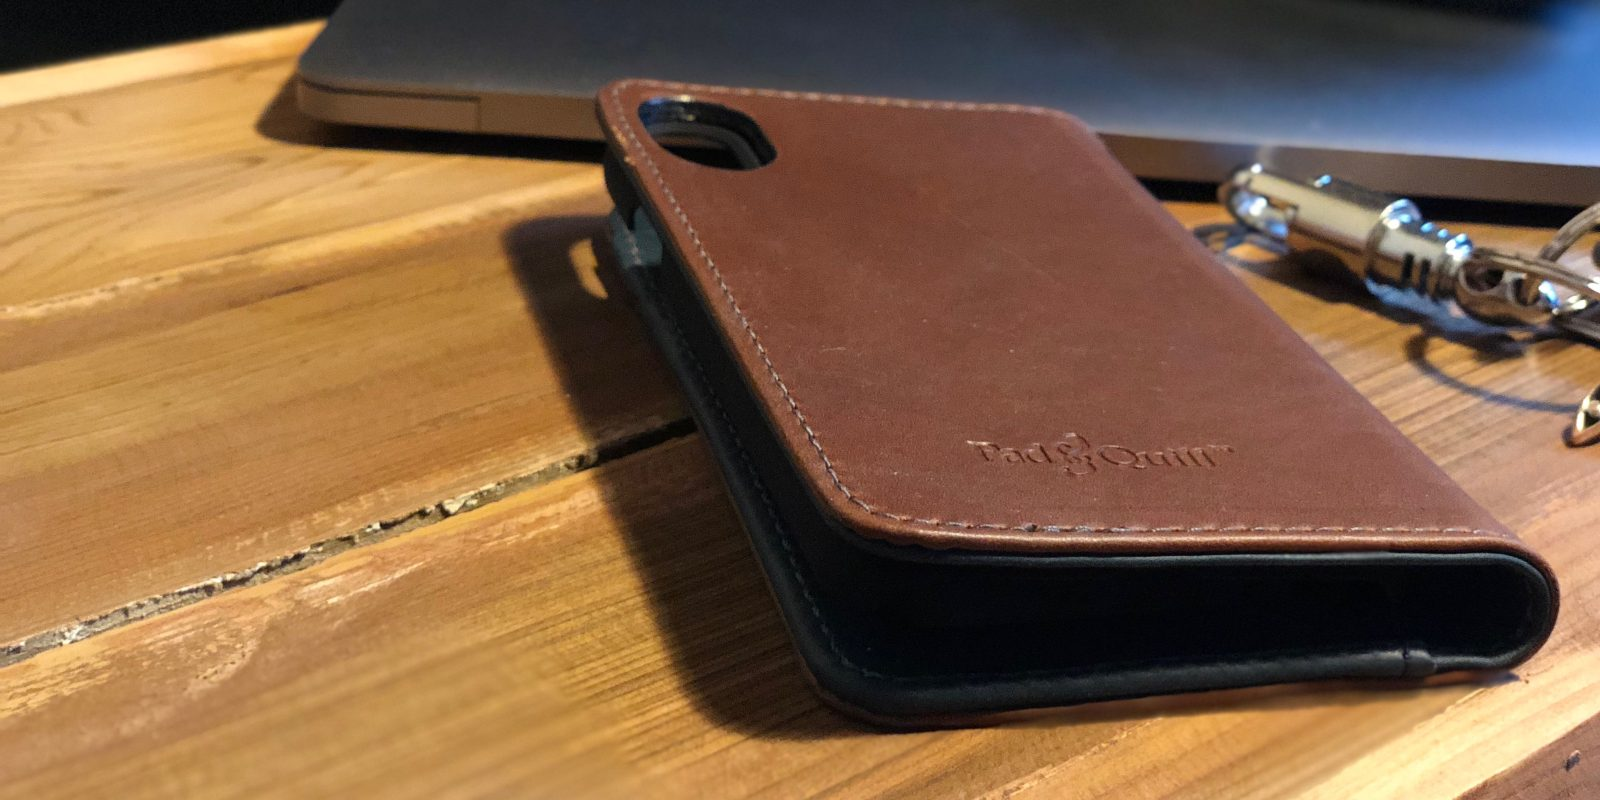 new concept b59dd 821bf Review: Pad & Quill's Bella Fino iPhone X Wallet Case delivers w ...